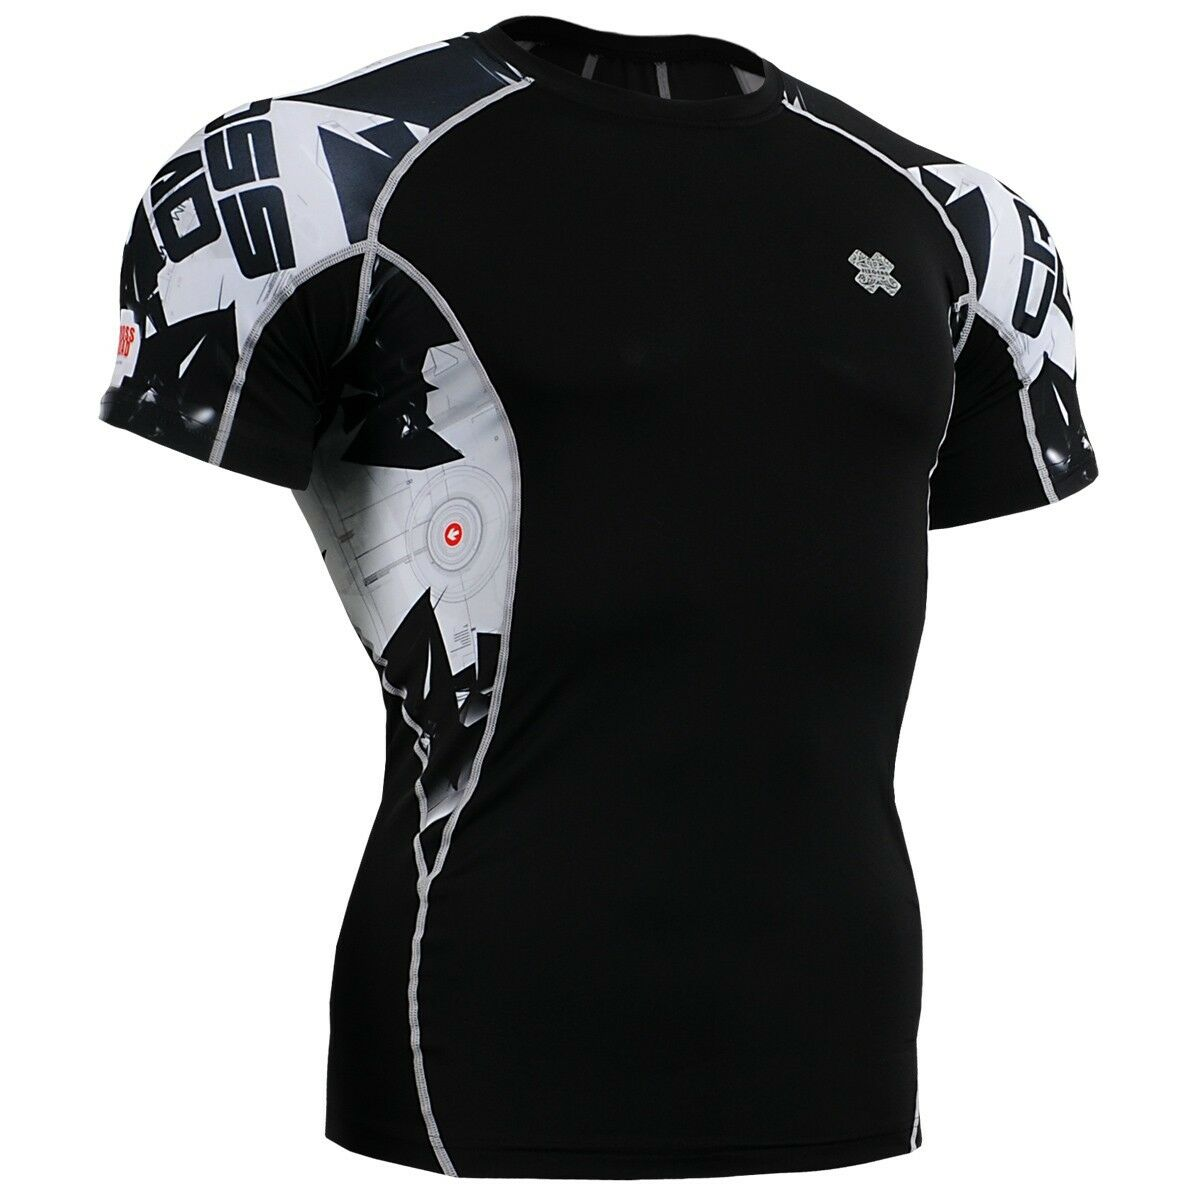 FIXGEAR C2S-B17 Compression Base Layer Workout Shirt Sportswear Gym MMA